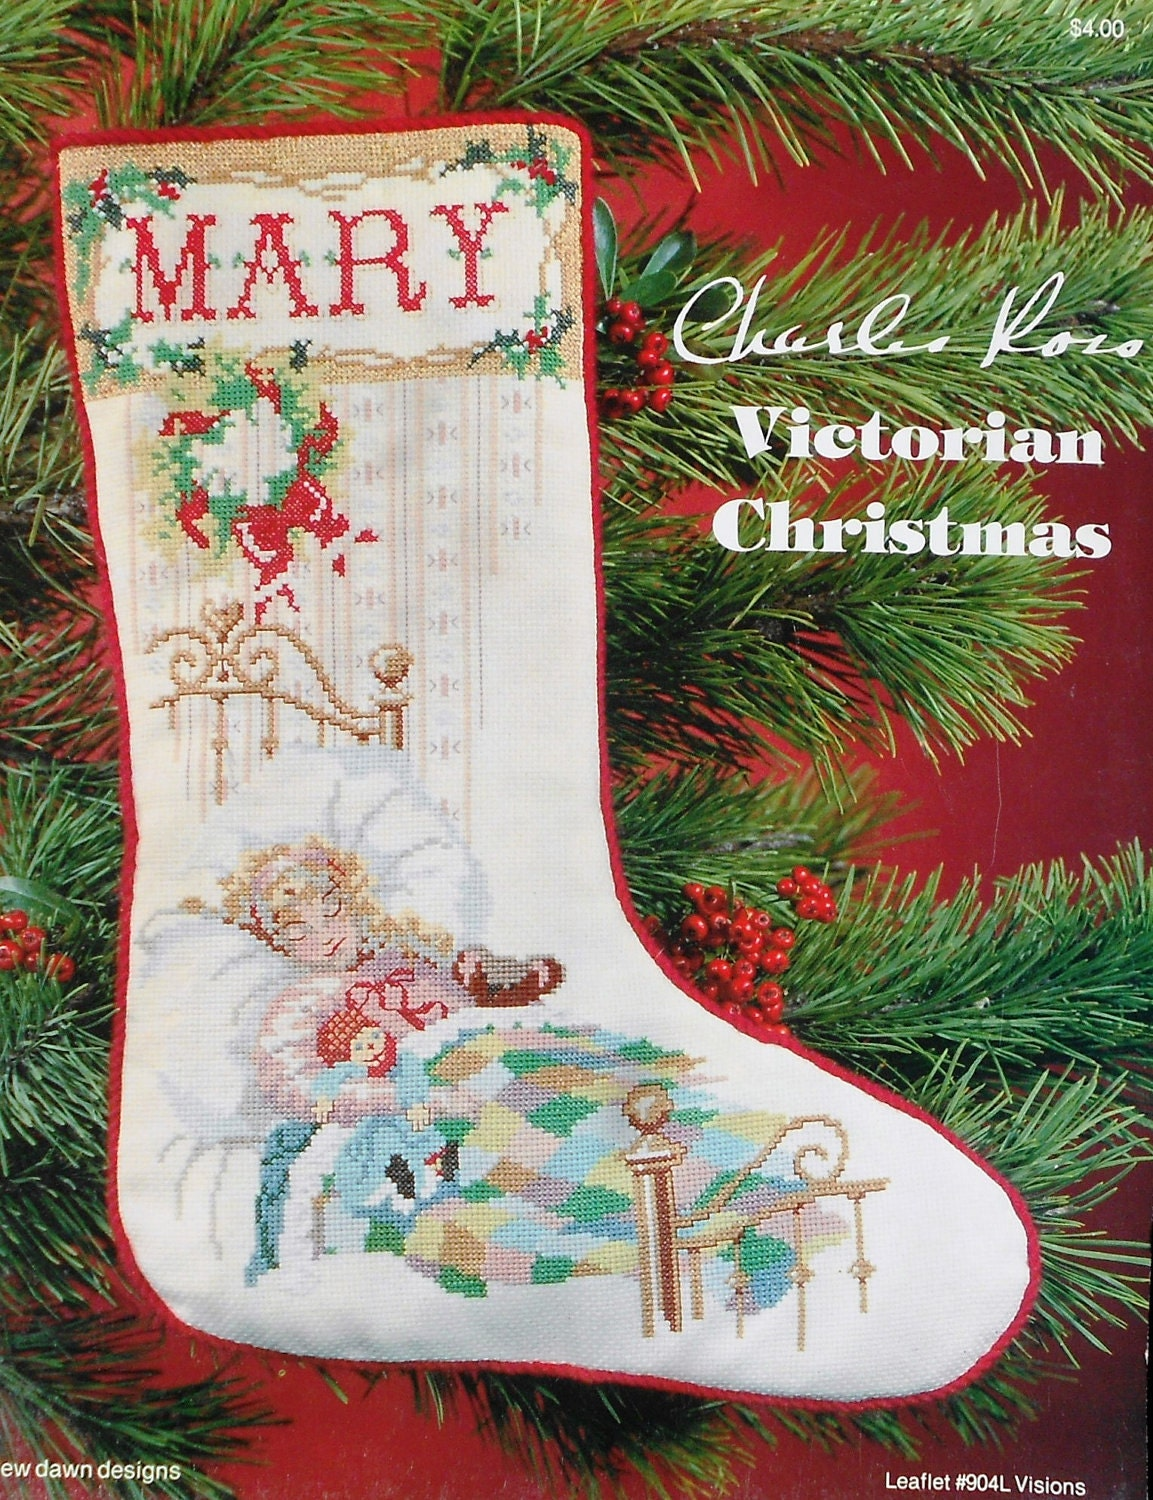 charles ross christmas cross stitch